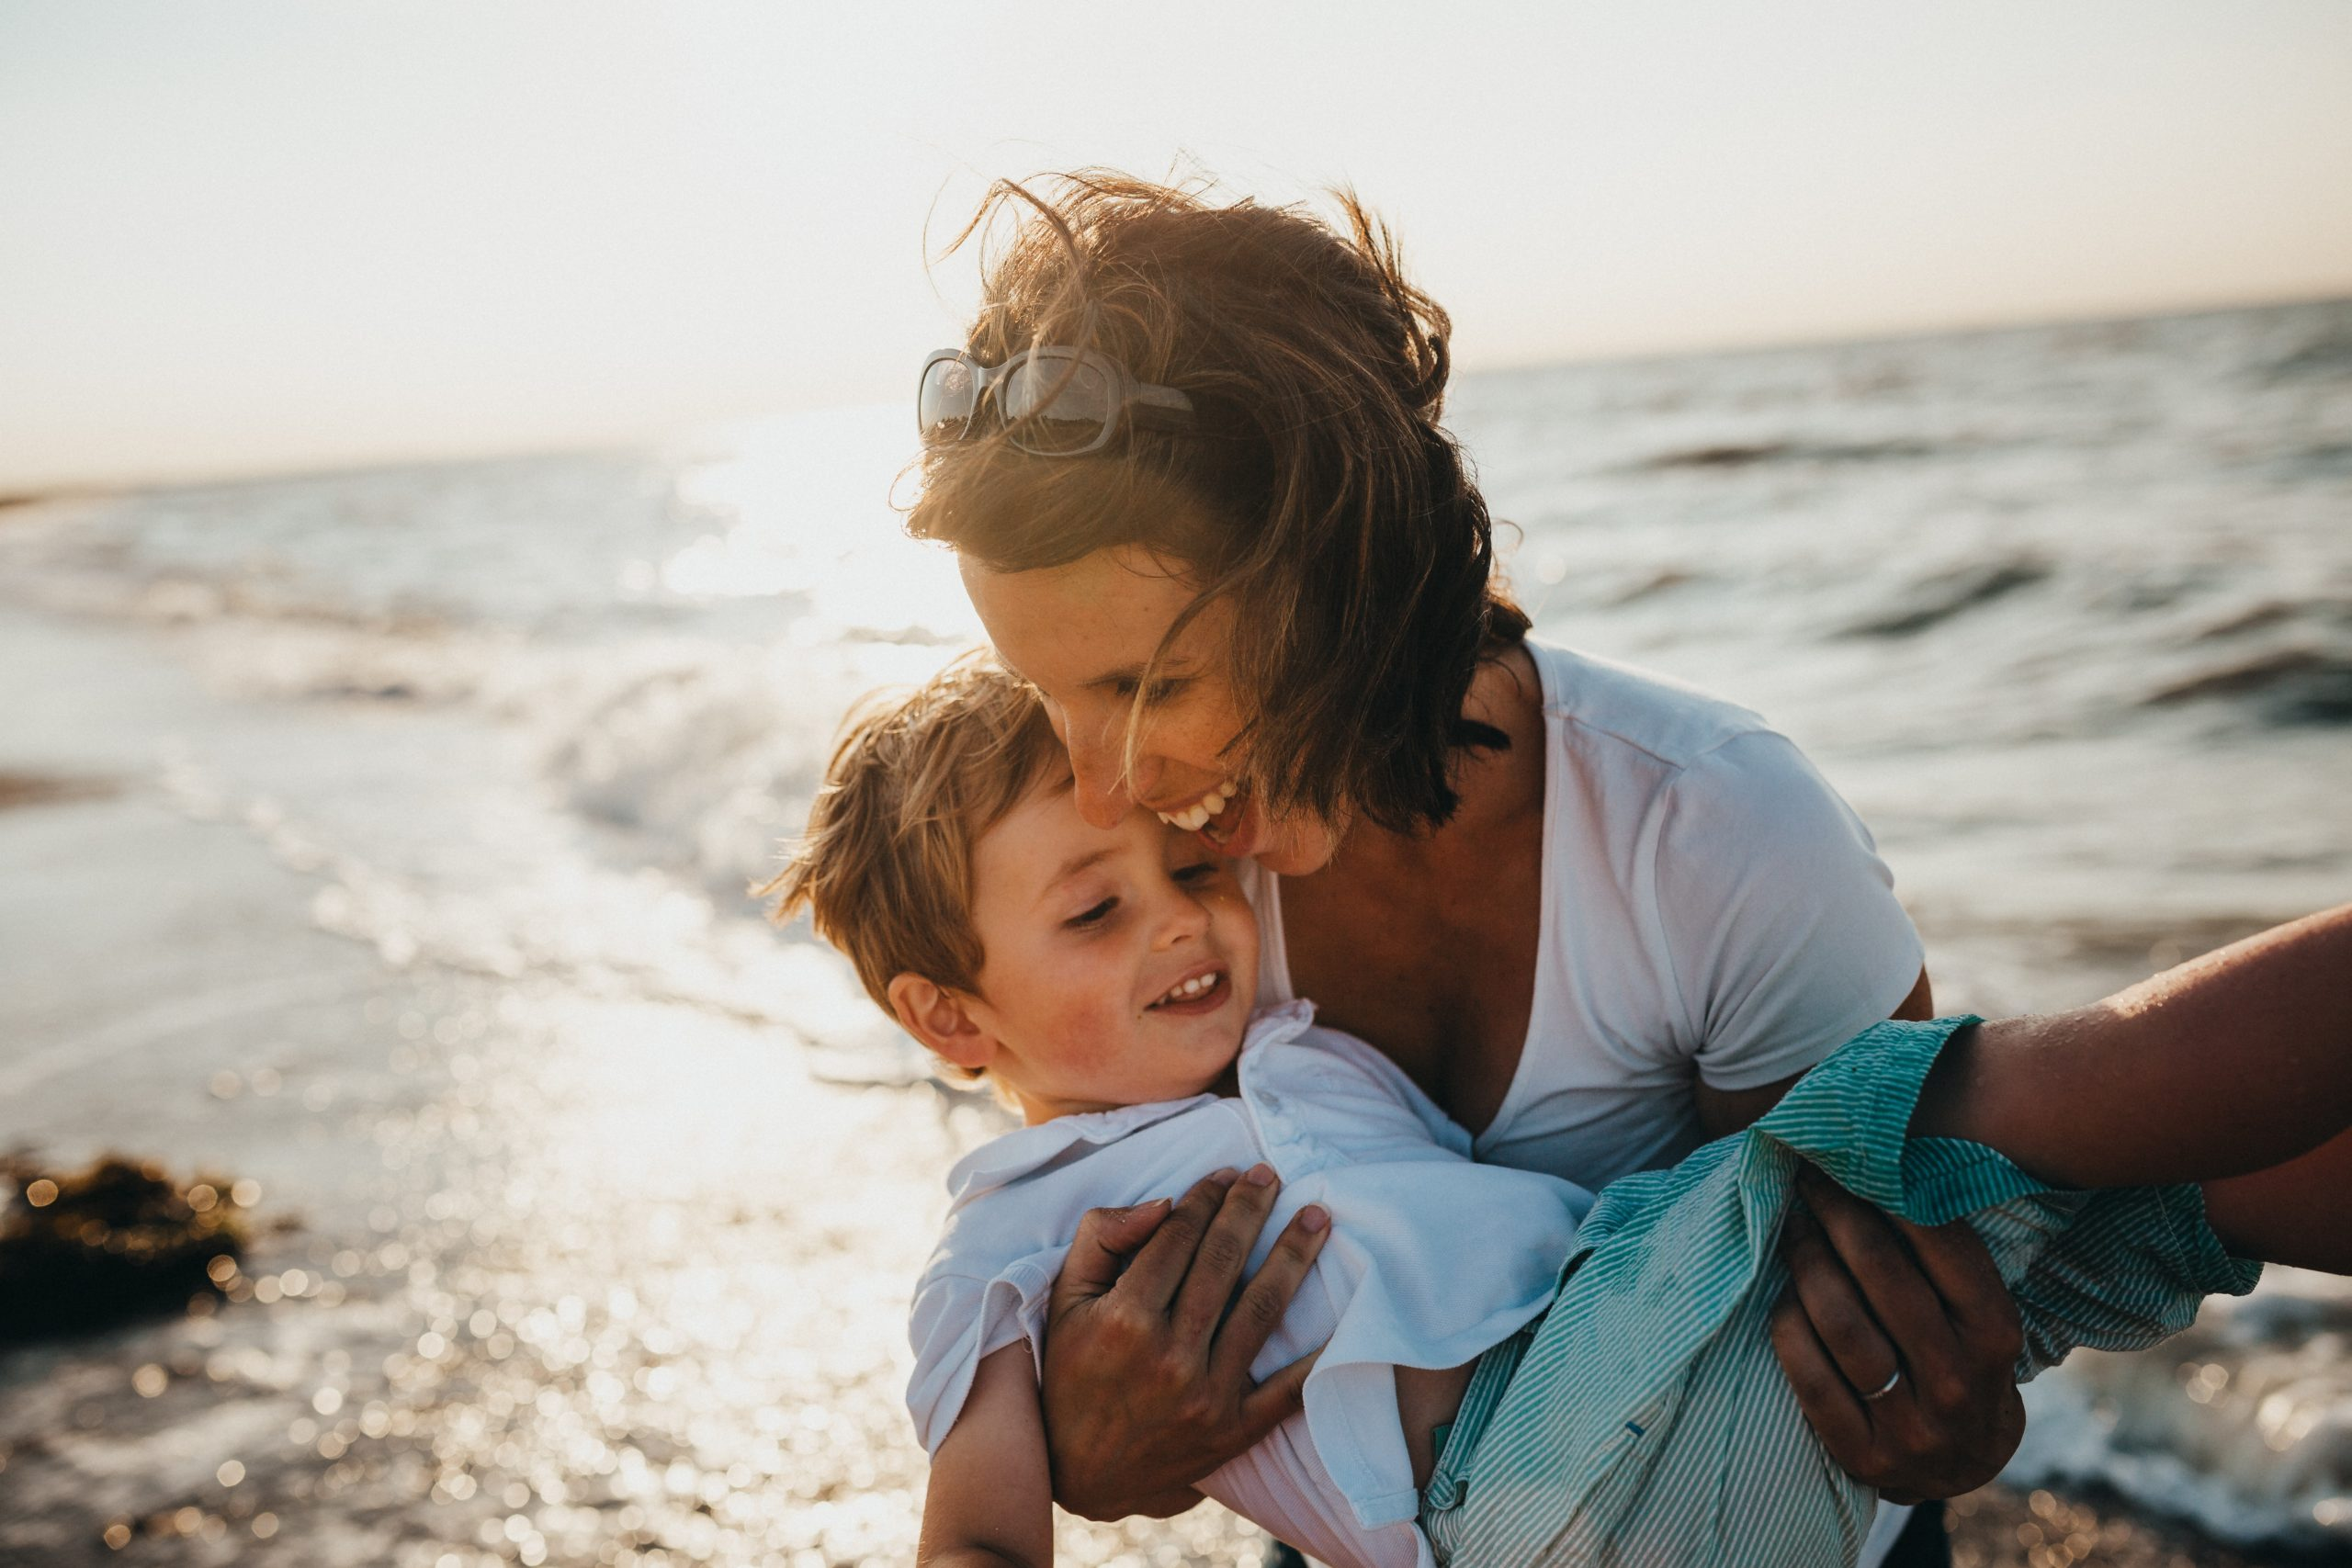 mom holding son at beach   Words of wisdom from my dad what the greatest success is